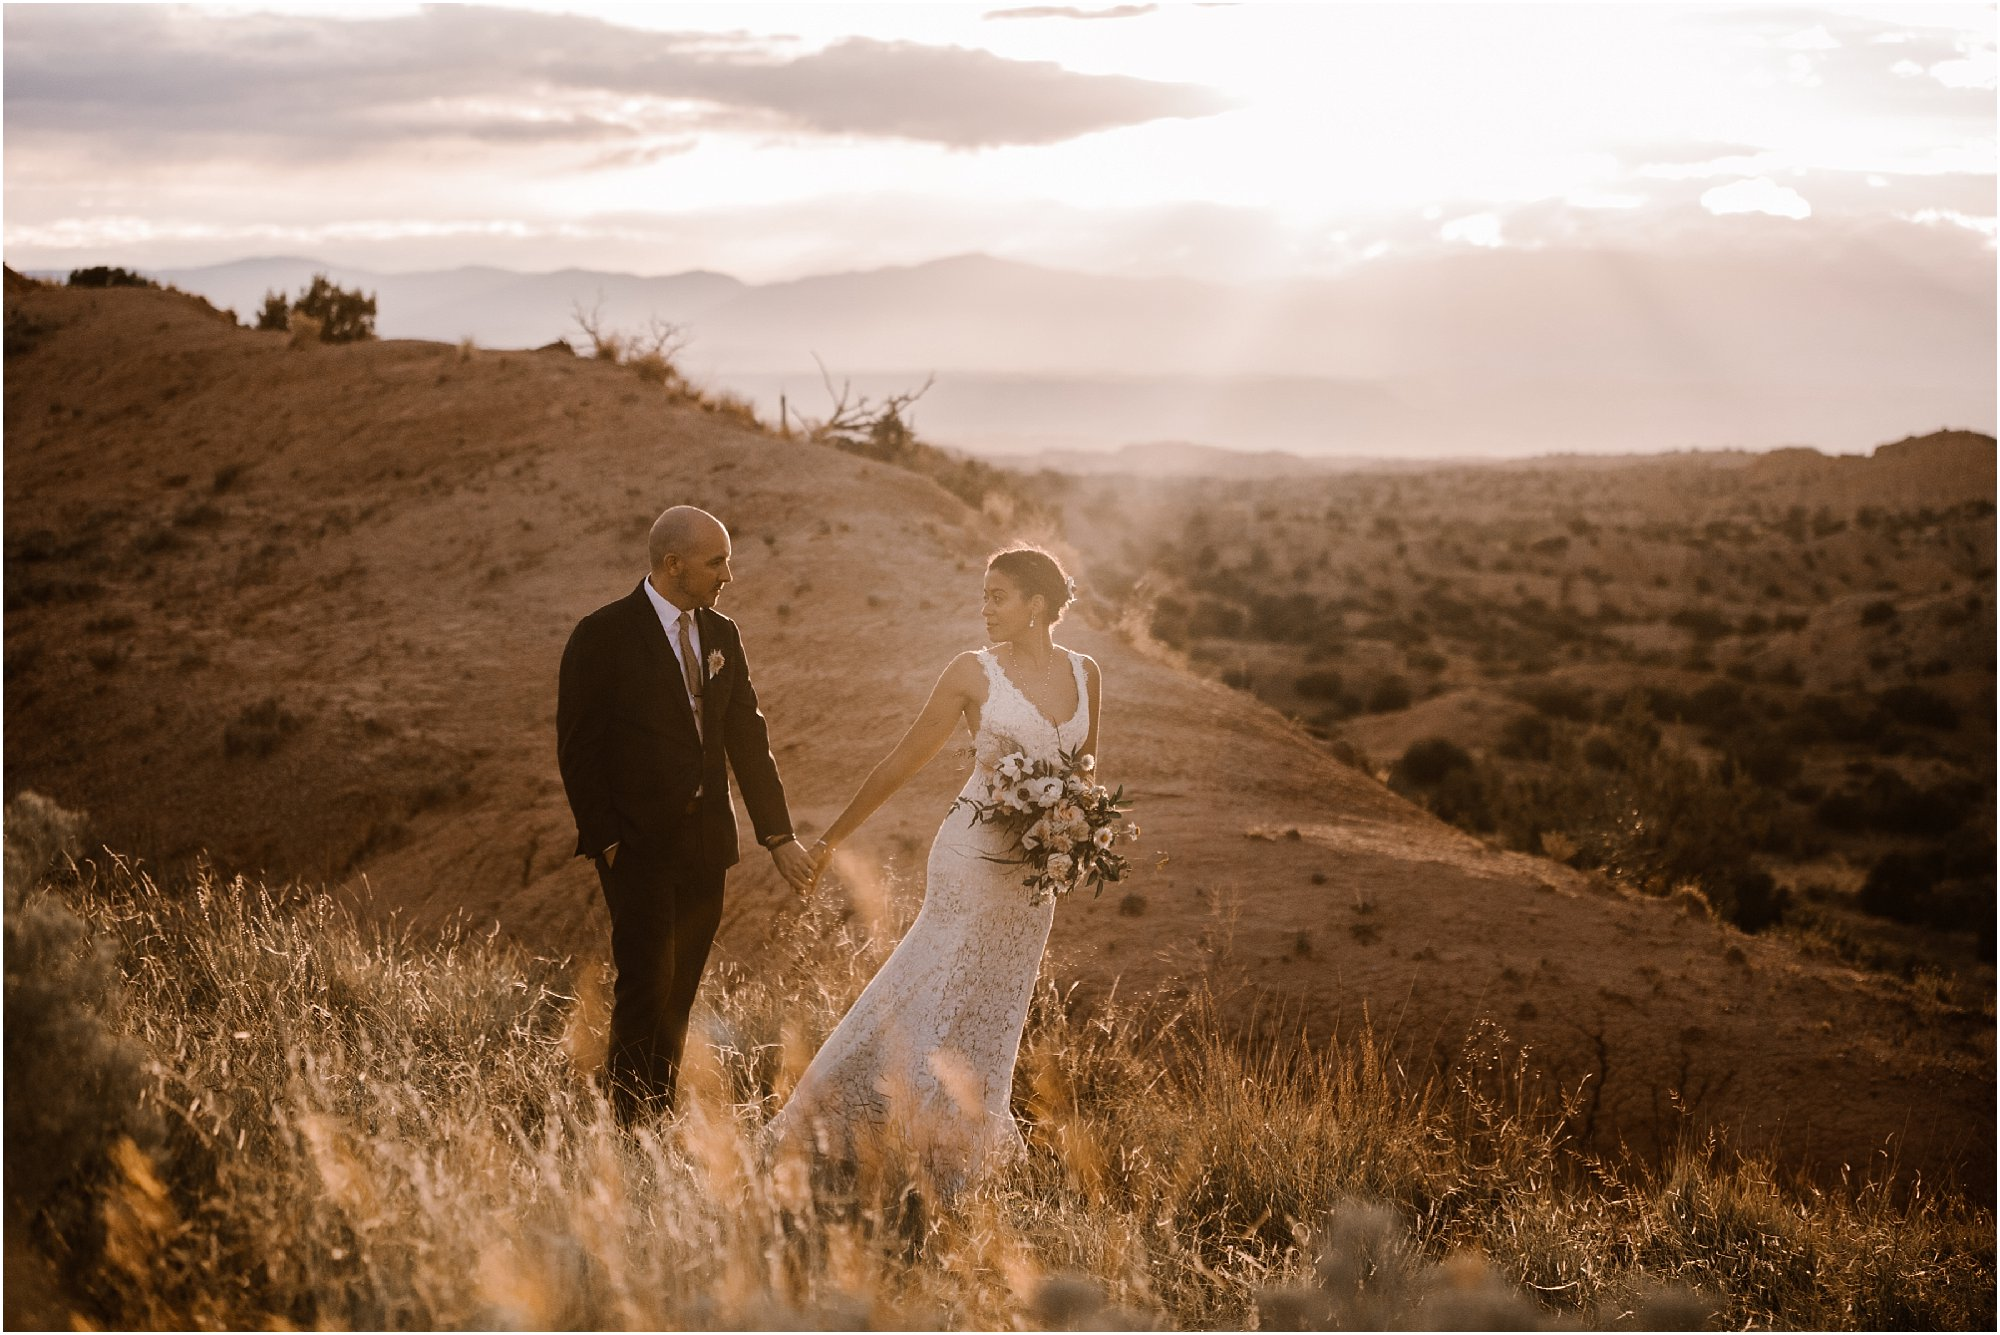 Wedding photography in santa fe new mexico